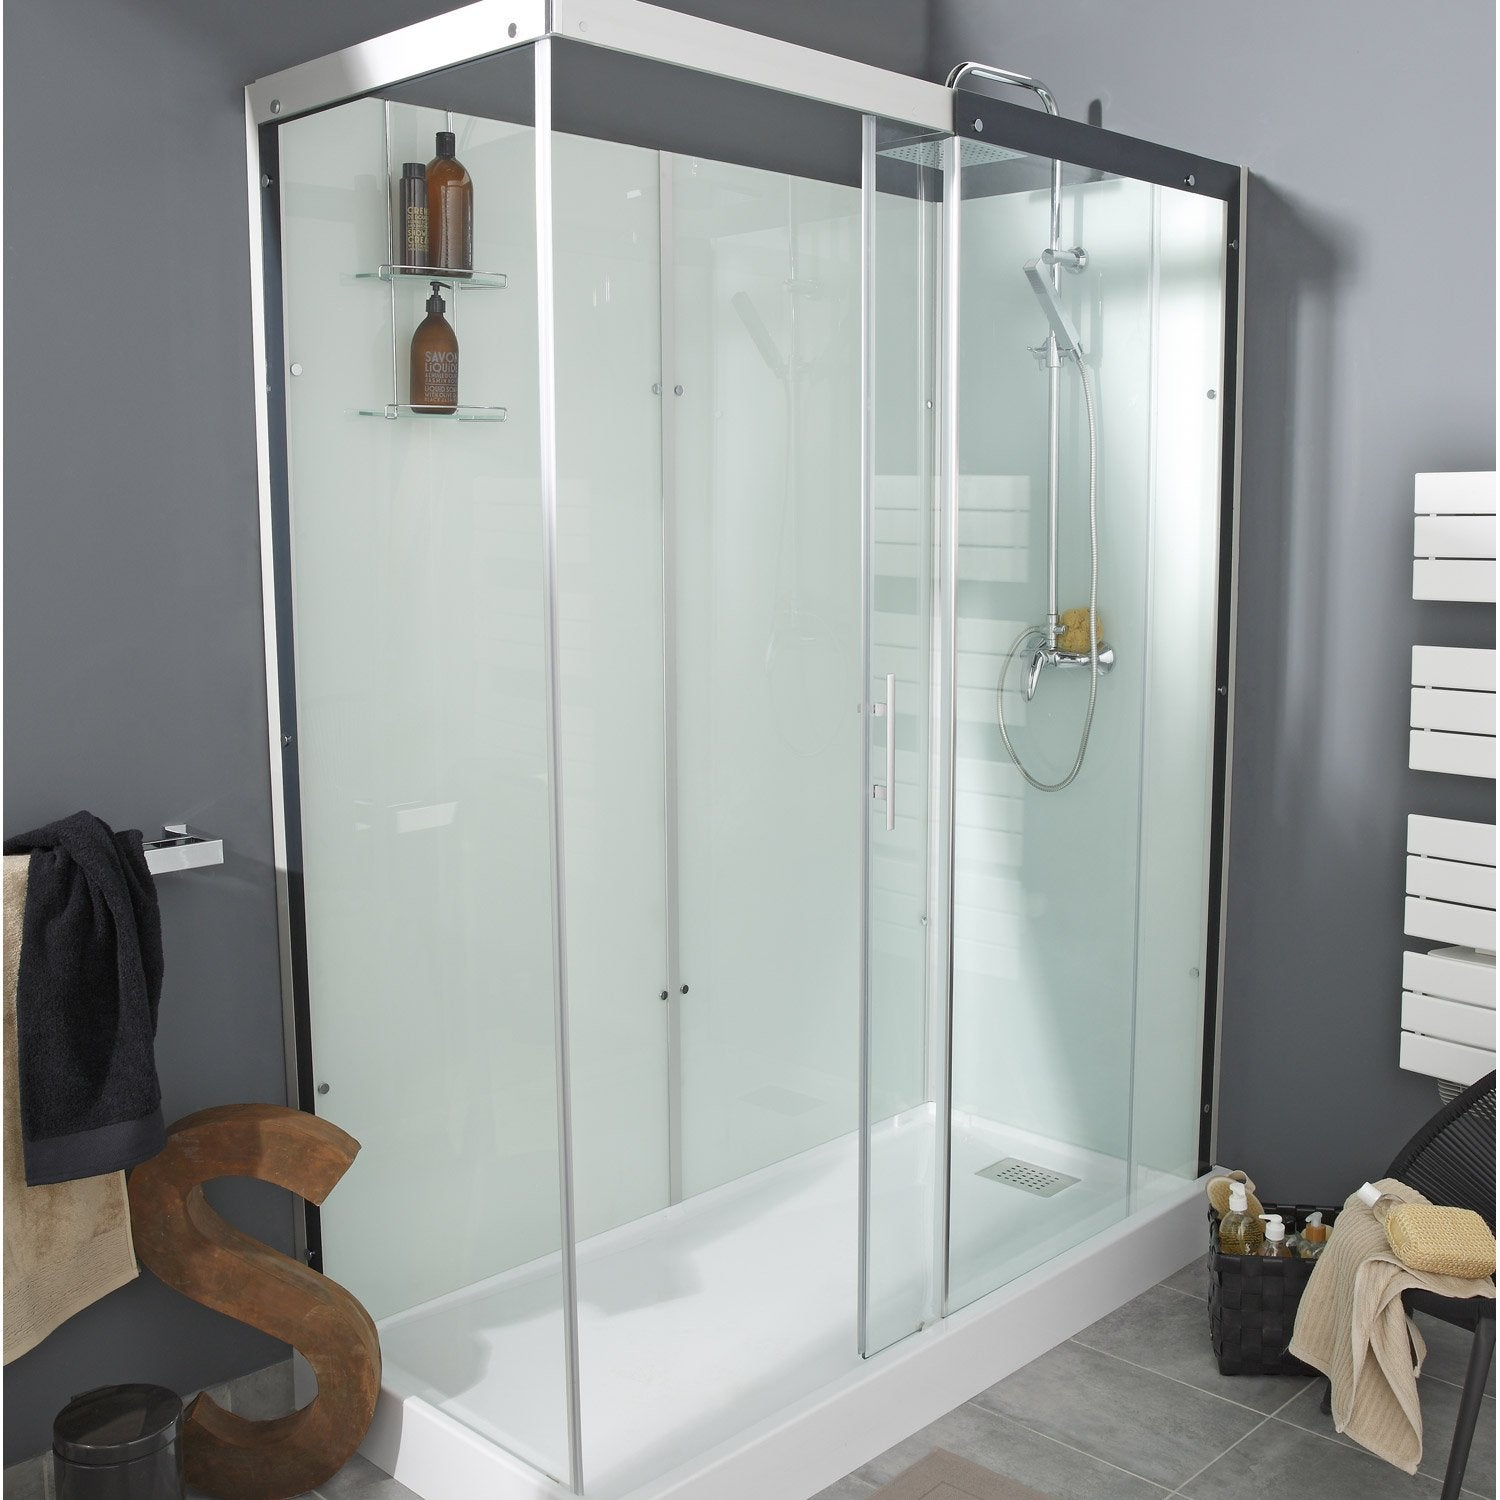 cabine de douche rectangulaire 170x80 cm thalaglass 2 mitigeur leroy merlin. Black Bedroom Furniture Sets. Home Design Ideas